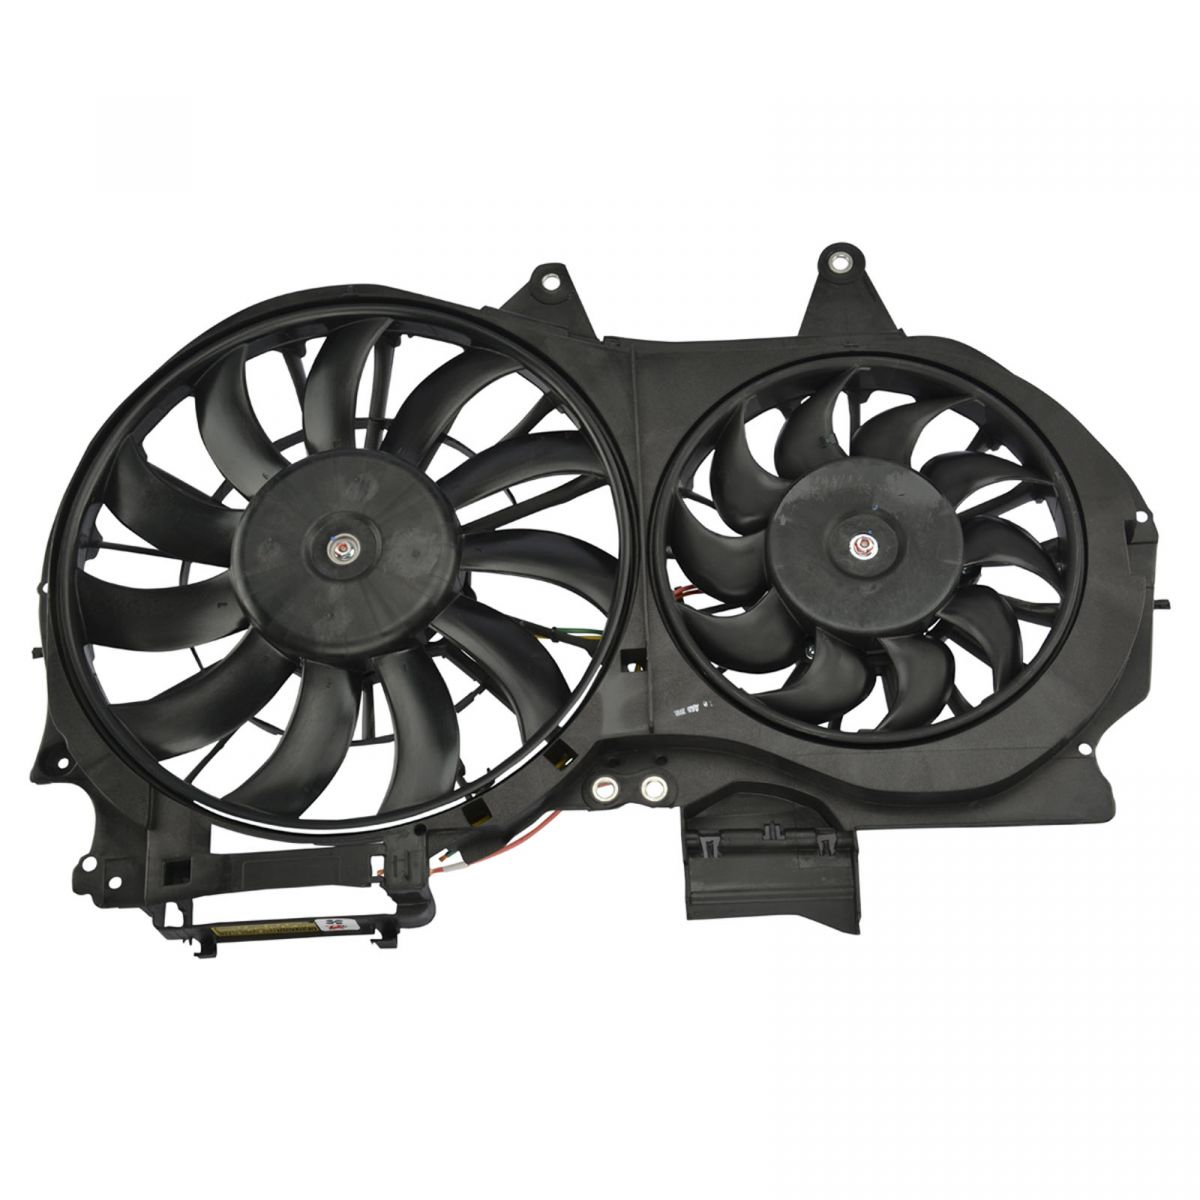 Dual Radiator Cooling Fan Assembly for 02-03 Audi A4 L4 Turbo 1.8L